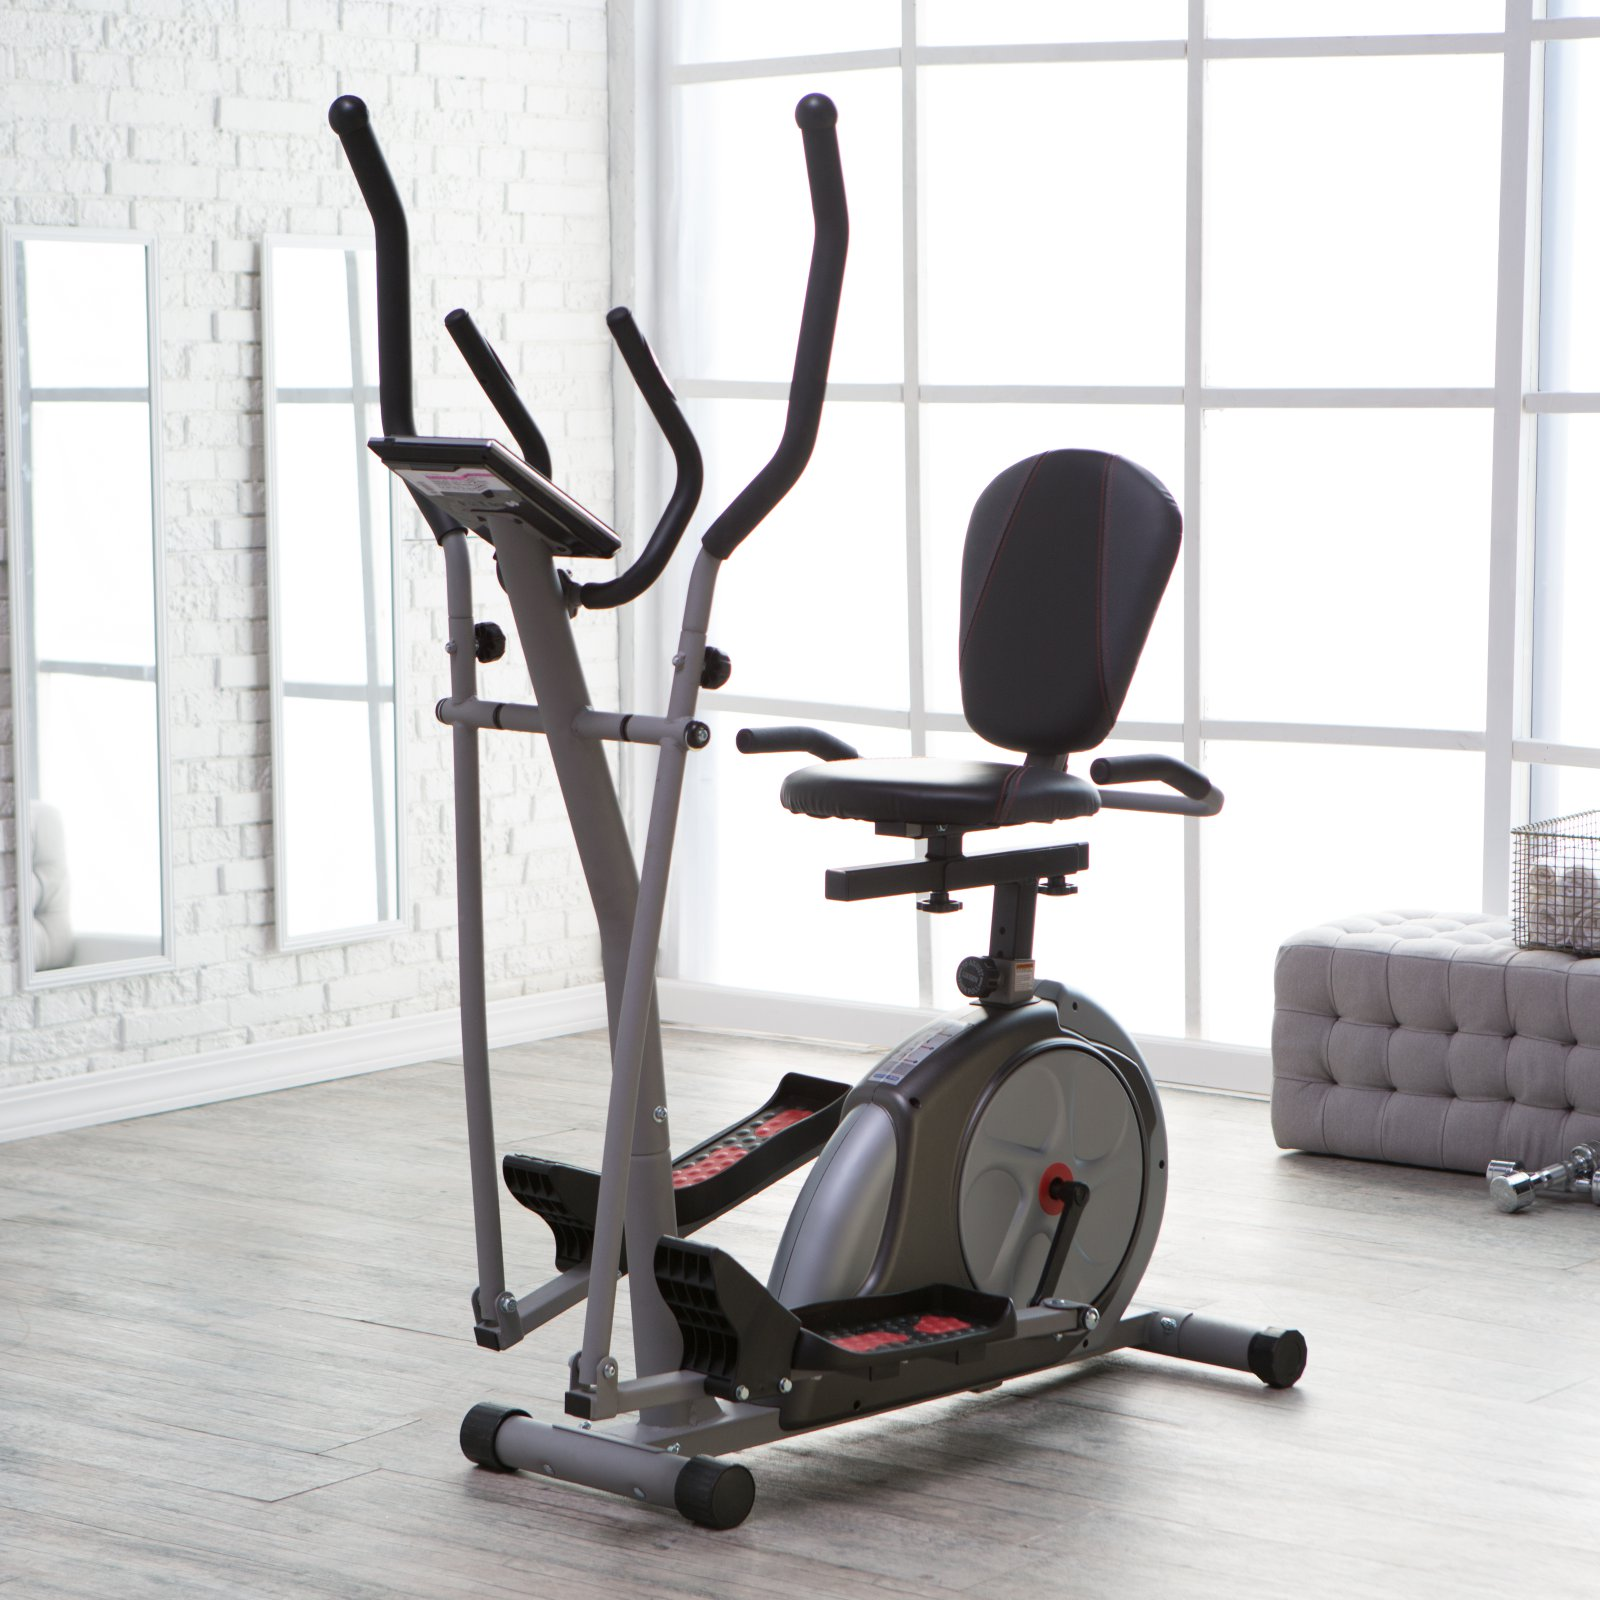 Body Rider 3-in-1 Trio Trainer - Elliptical/Recumbent Bike/Upright Bike